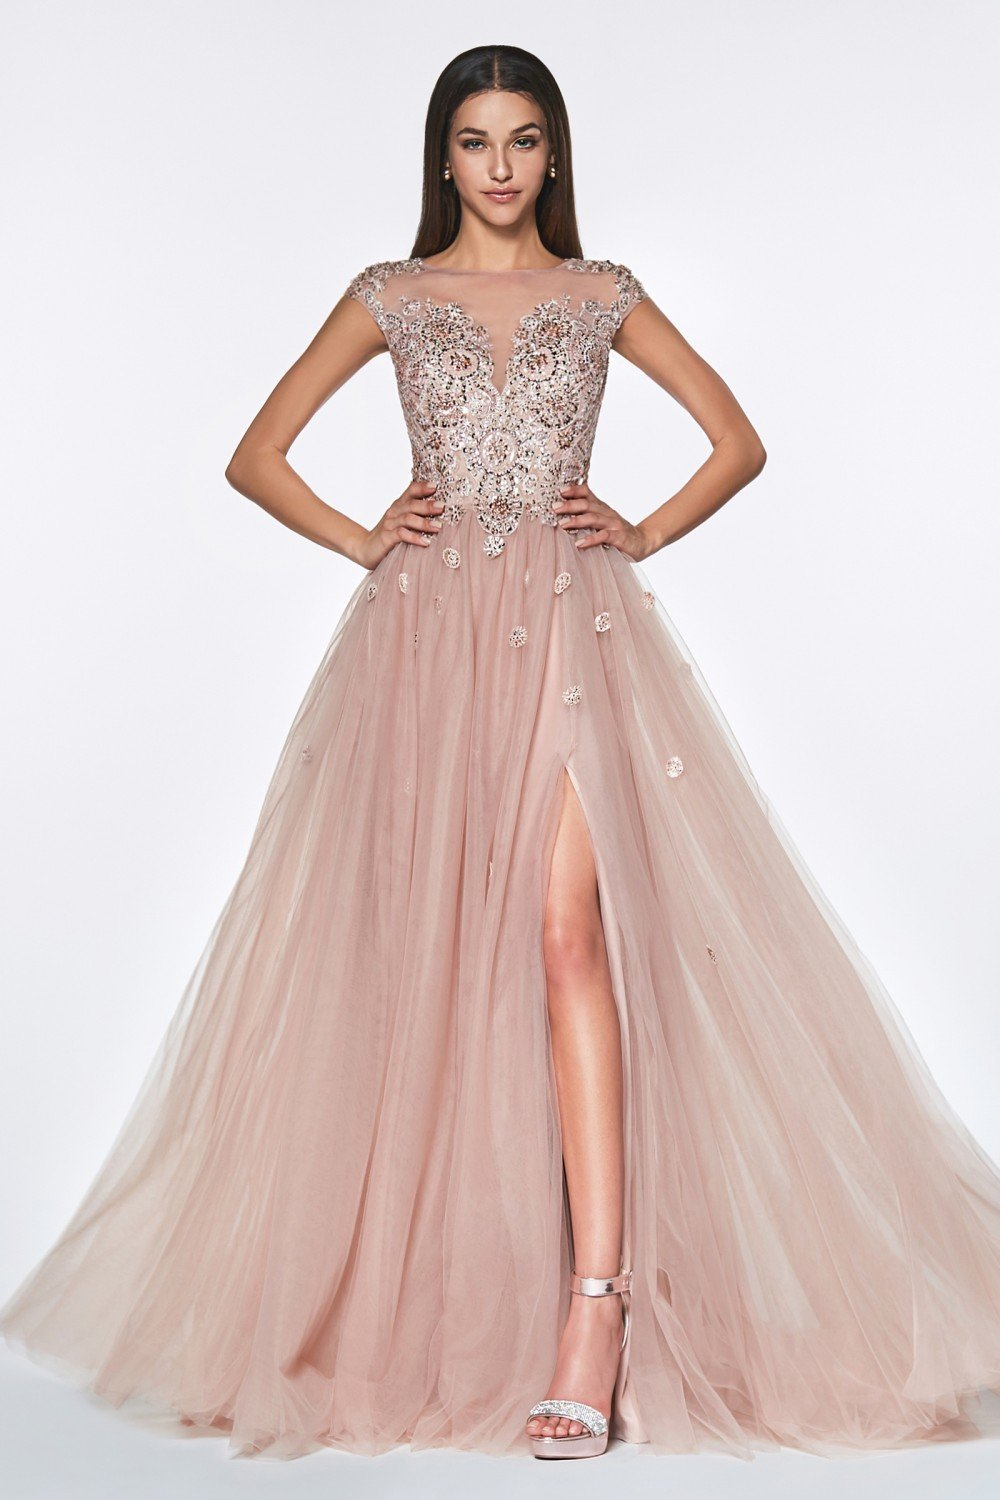 A-line tulle gown with cap sleeve beaded lace applique and leg slit.